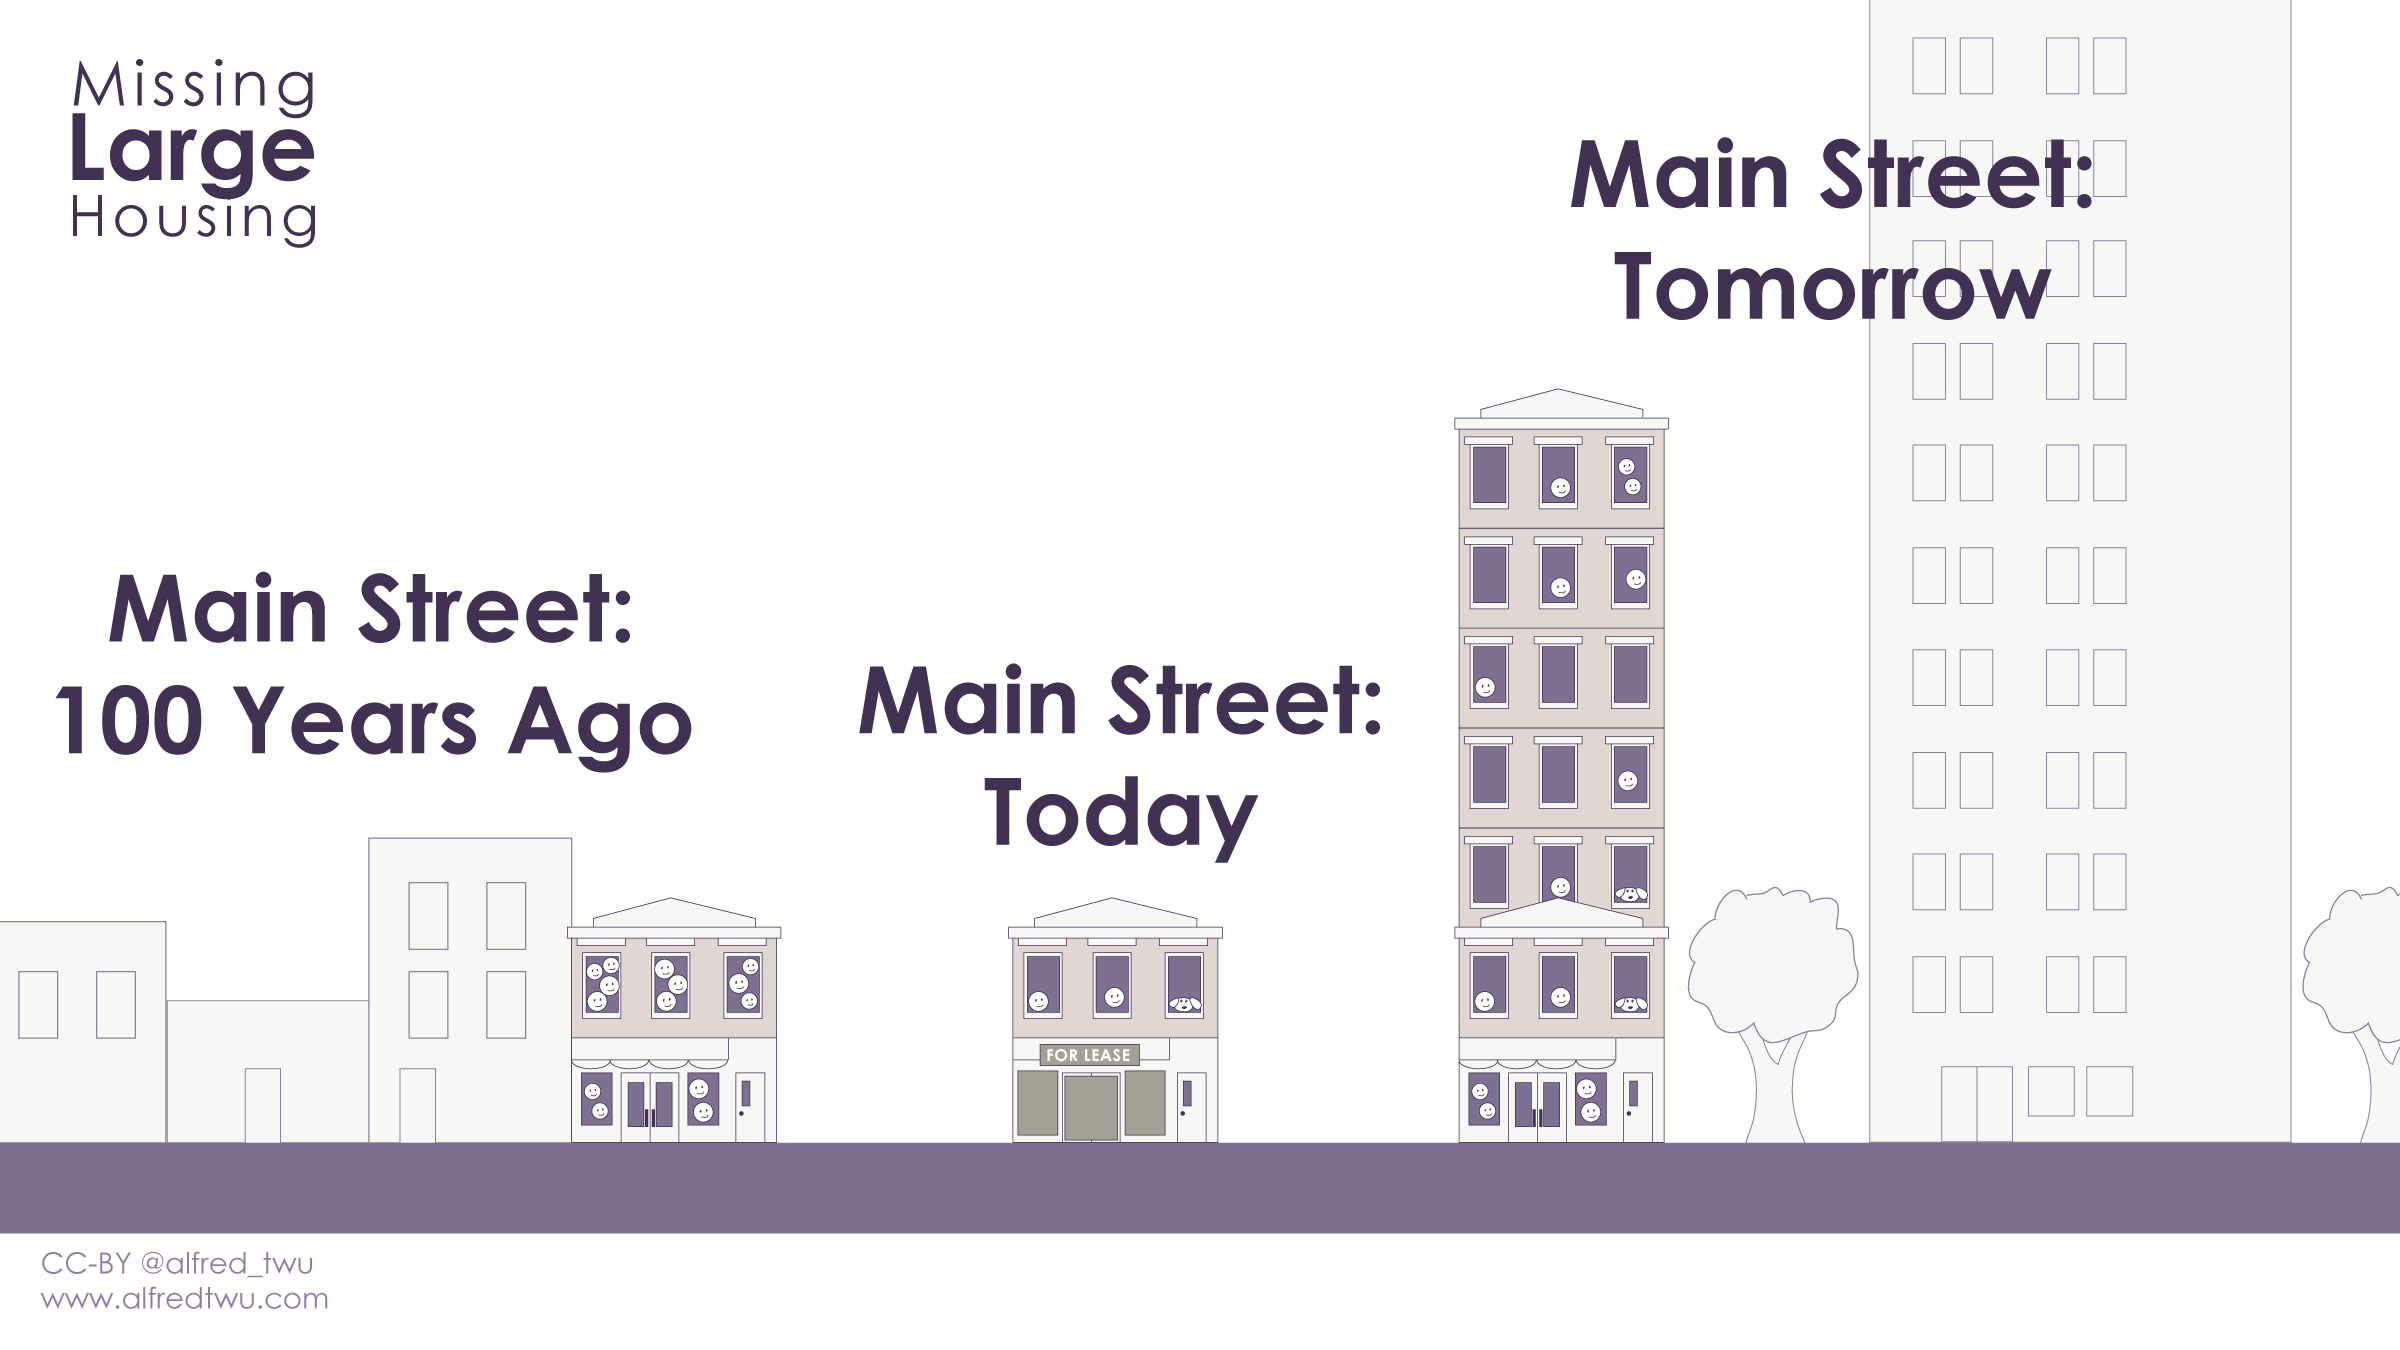 Main Street 100 years ago: crowded, low rise buildings. Main street today: uncrowded, but stores closed. Main street tomorrow: Tall building with spacious housing and active businesses